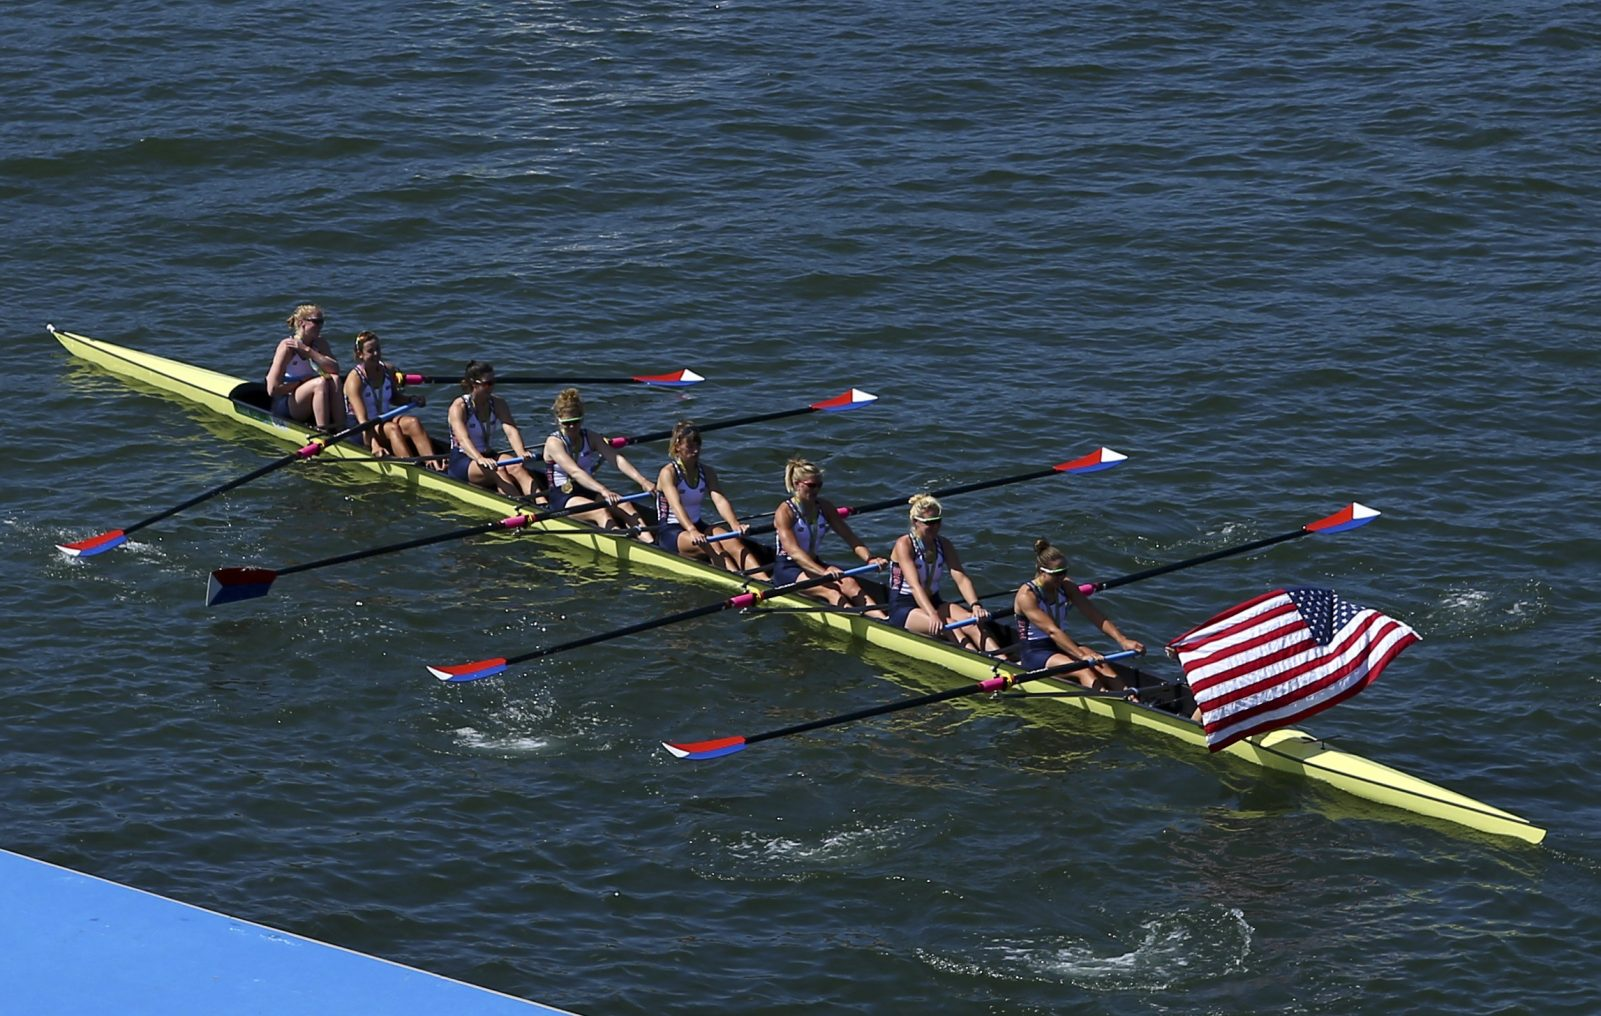 Gold medalists Team USA row away after the medal ceremony in the Women's Eight Finals at Lagoa Stadium August 13, 2016 in Rio De Janeiro, Brazil. (Getty Images)